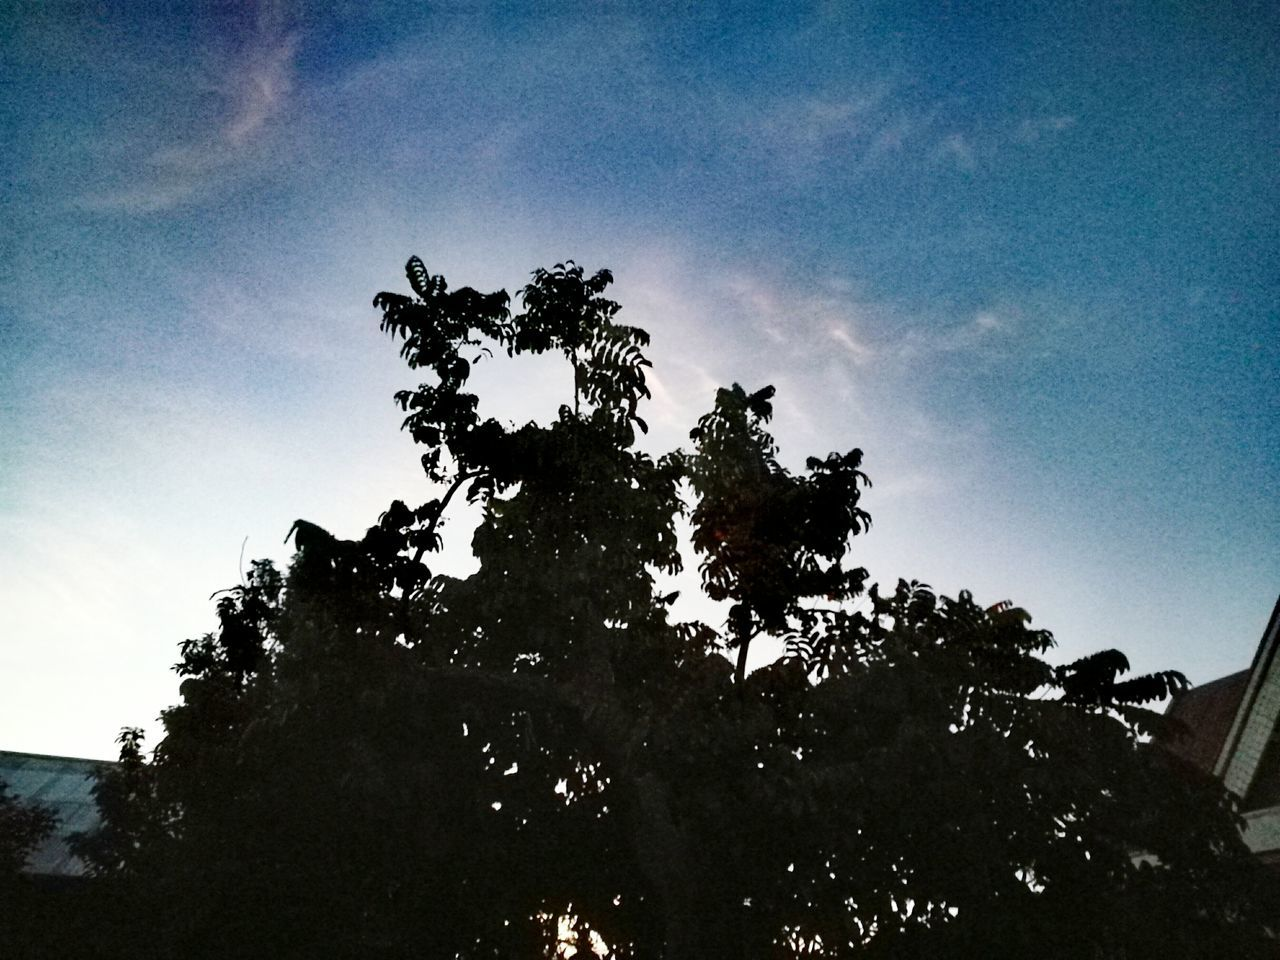 Tree Low Angle View Sky No People Outdoors Nature Day Growth Branch Beauty In Nature Close-up Pixelated